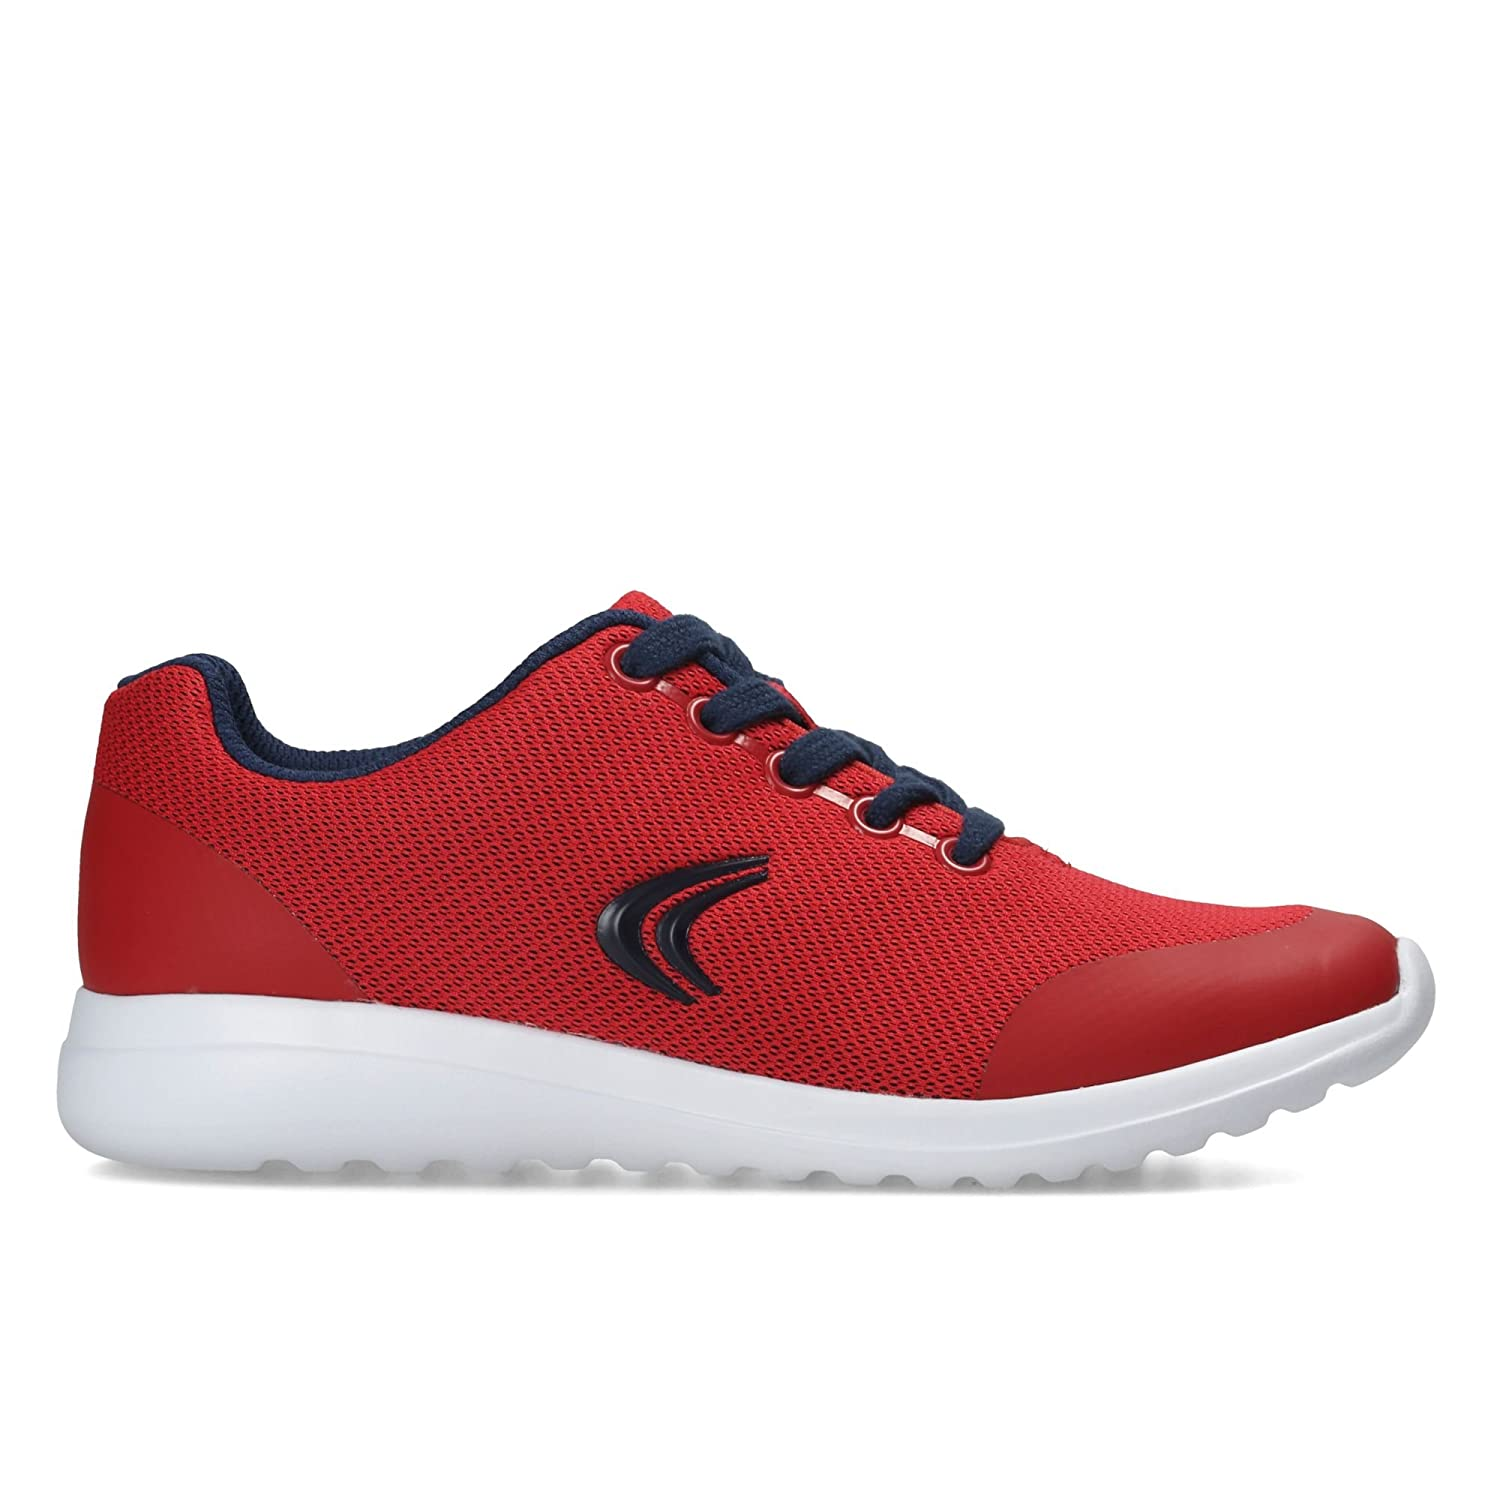 Clarks Red Sprint Free Jnr, Chaussures de ville Chaussures à lacets pour pour femme rouge Red - 9694401 - fast-weightloss-diet.space